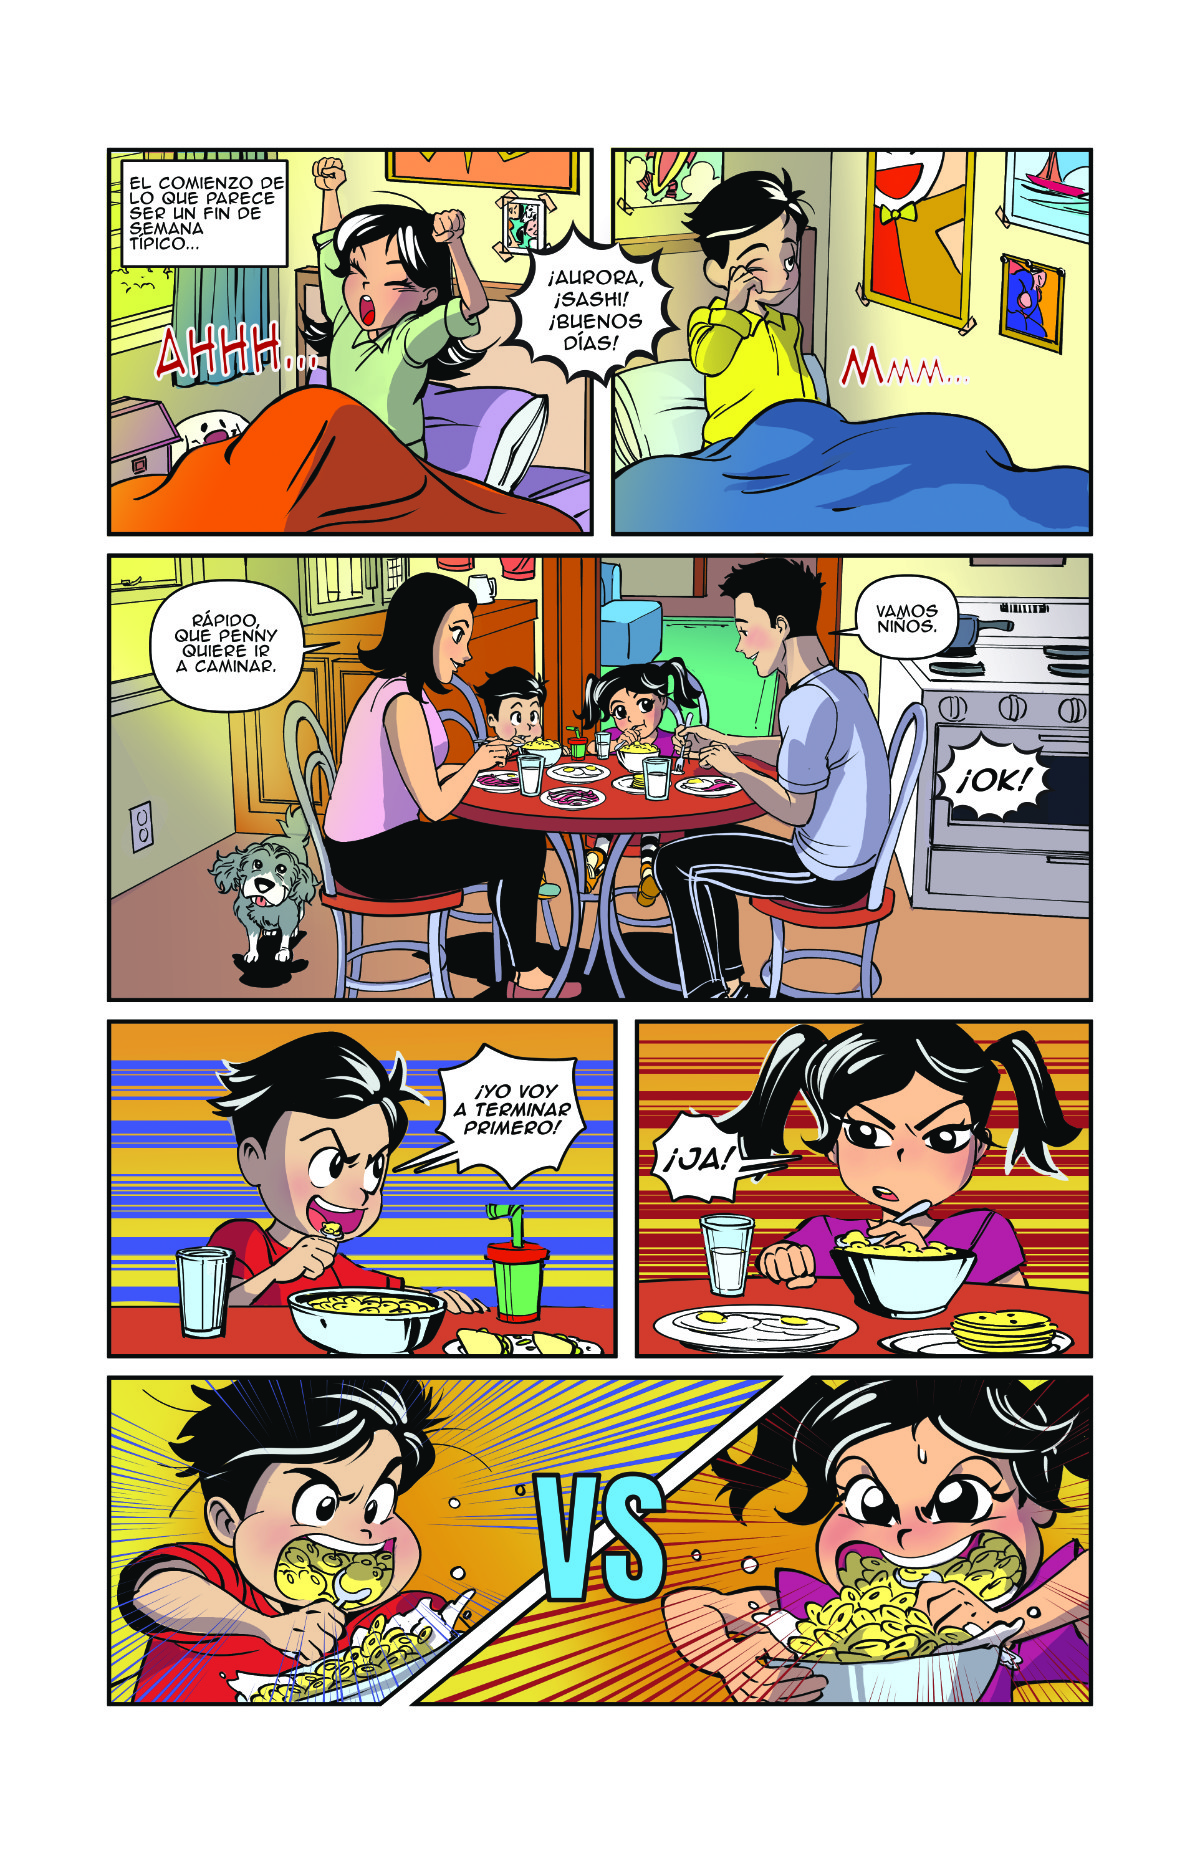 Lucha Comics - Super Yeiya 01 page 2 es preview